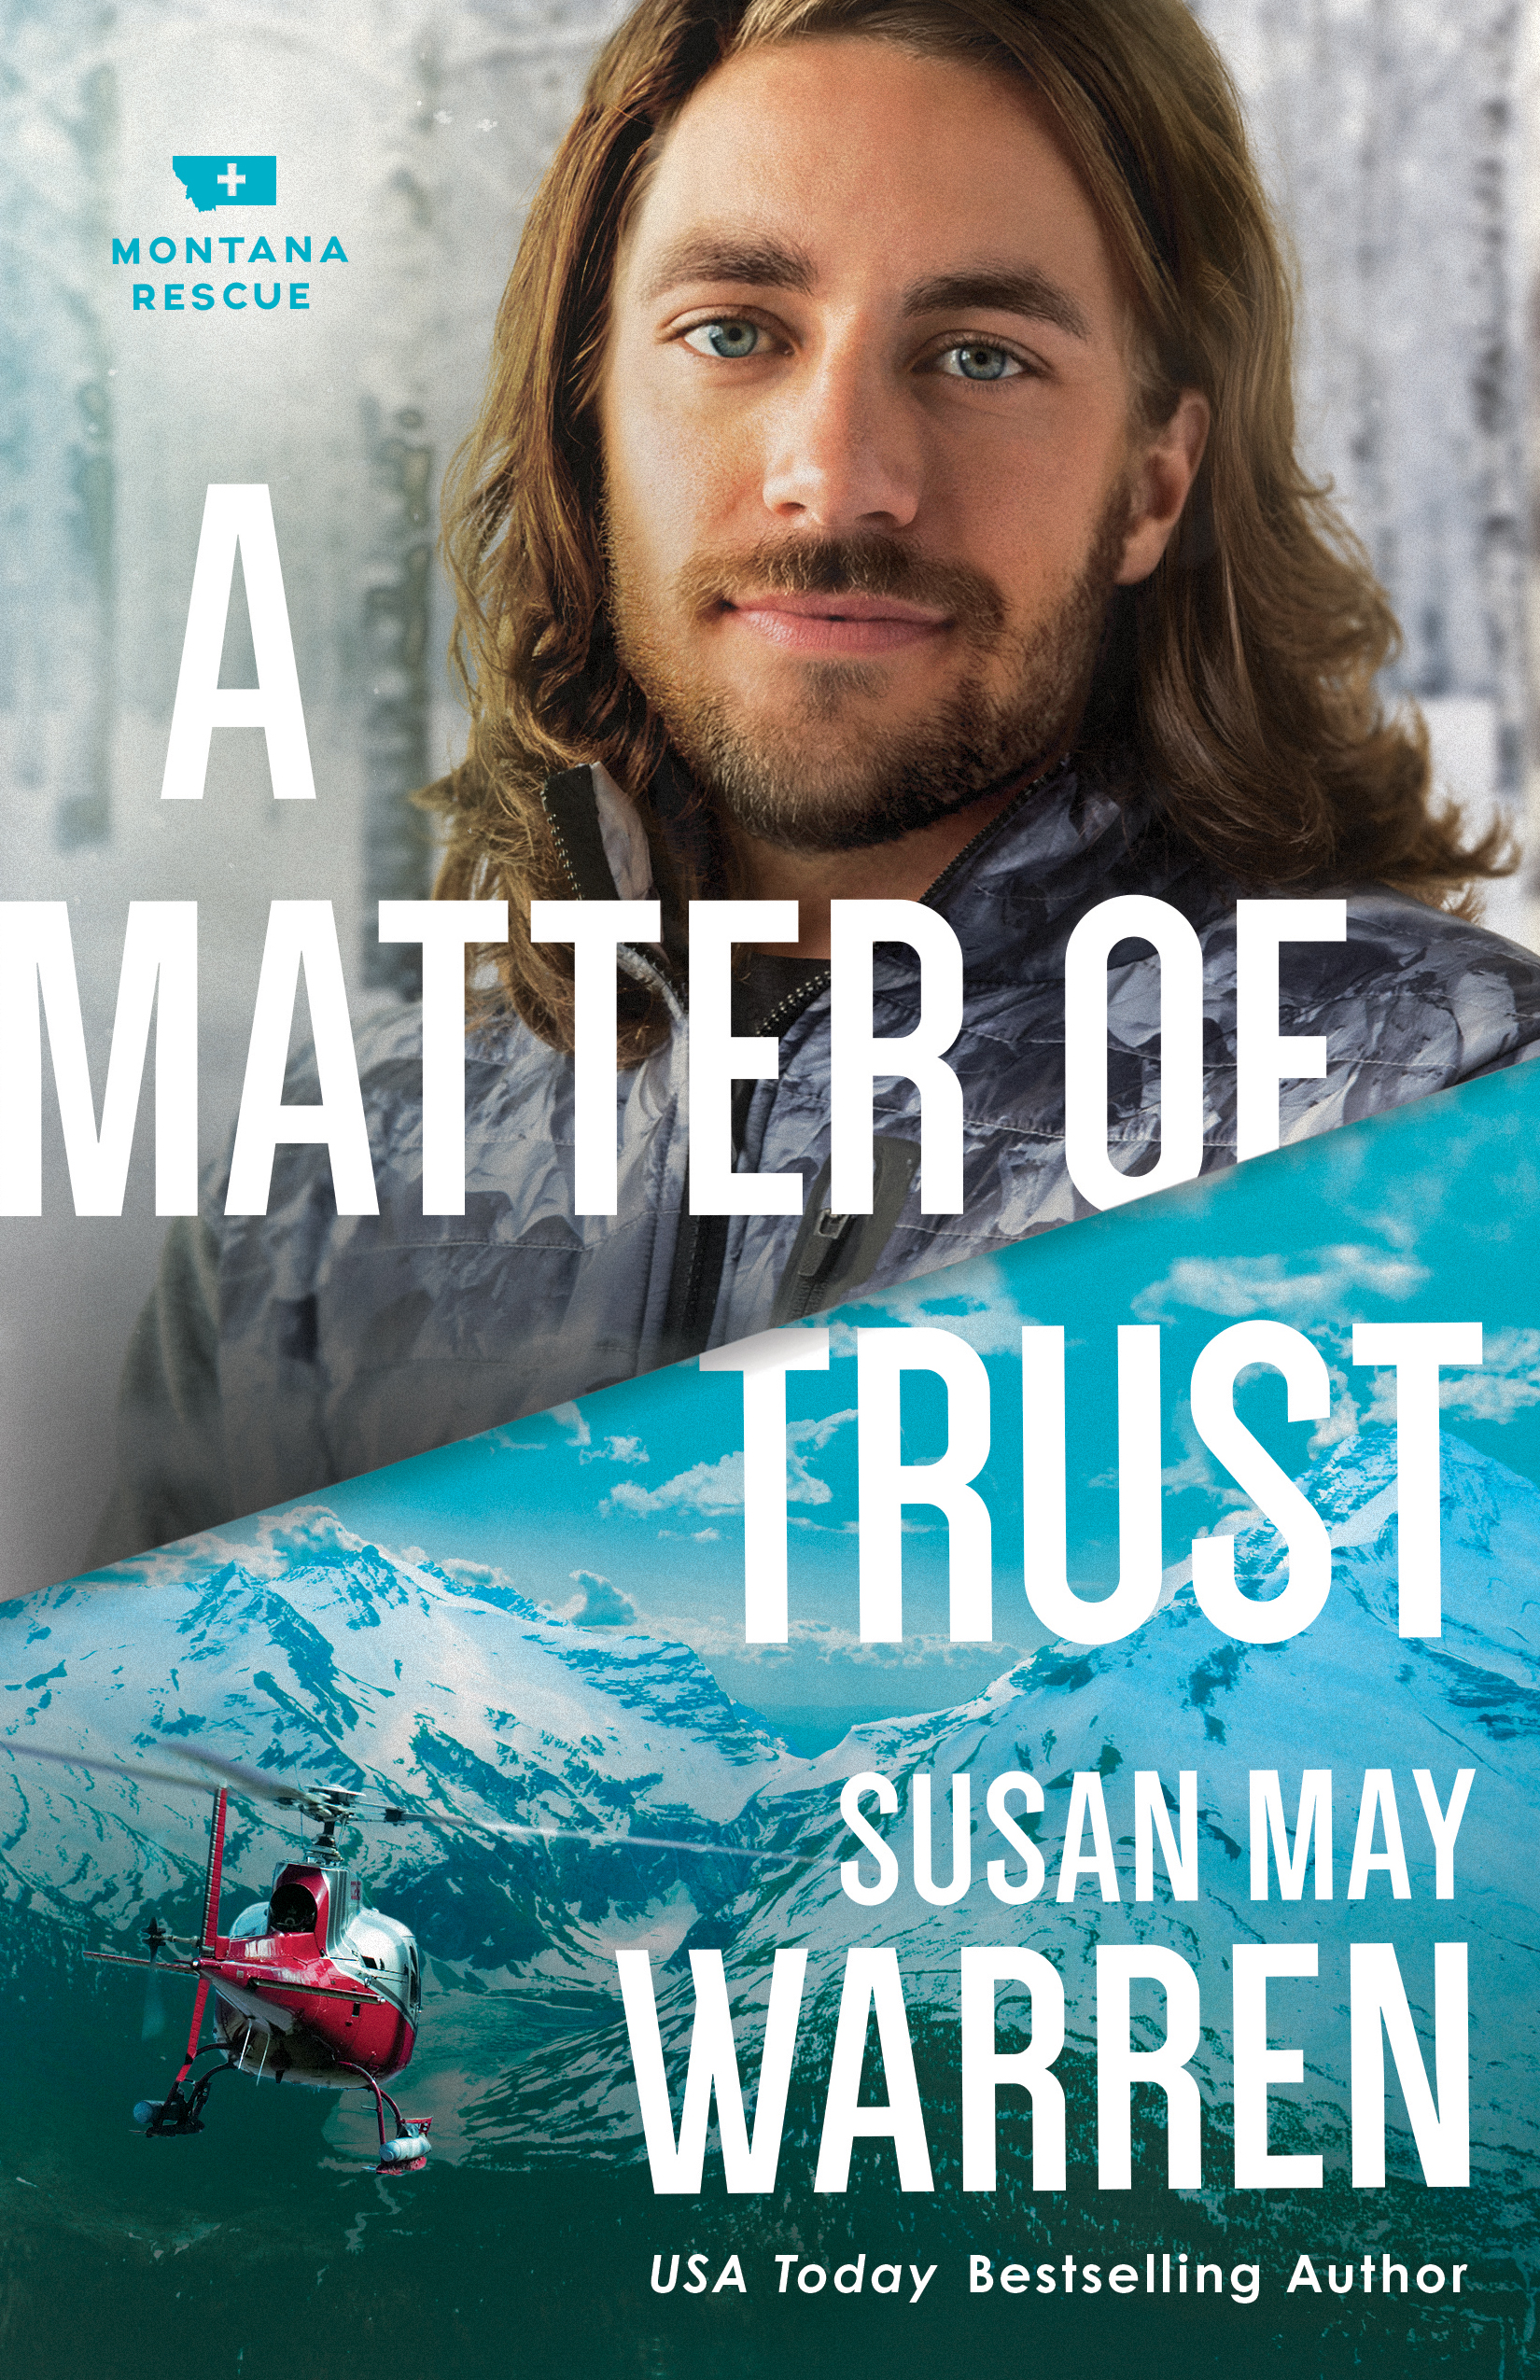 Book review of A Matter Of Trust by Susan May Warren (Revell) by papertapepins